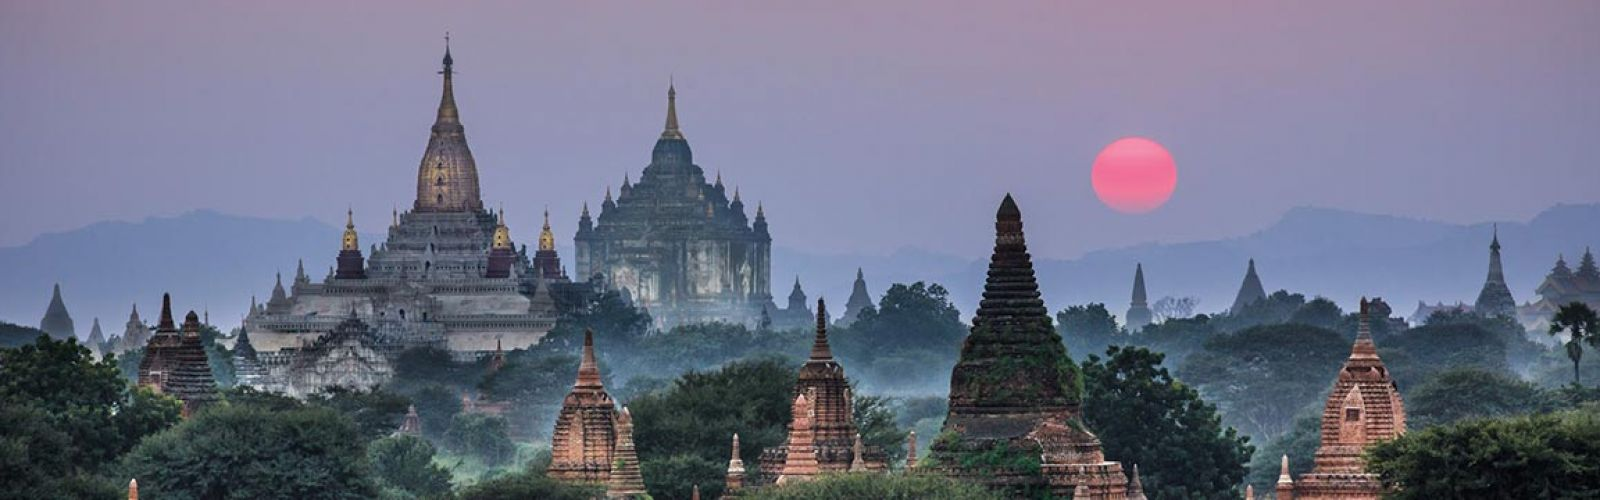 Myanmar Classic Highlight Tours